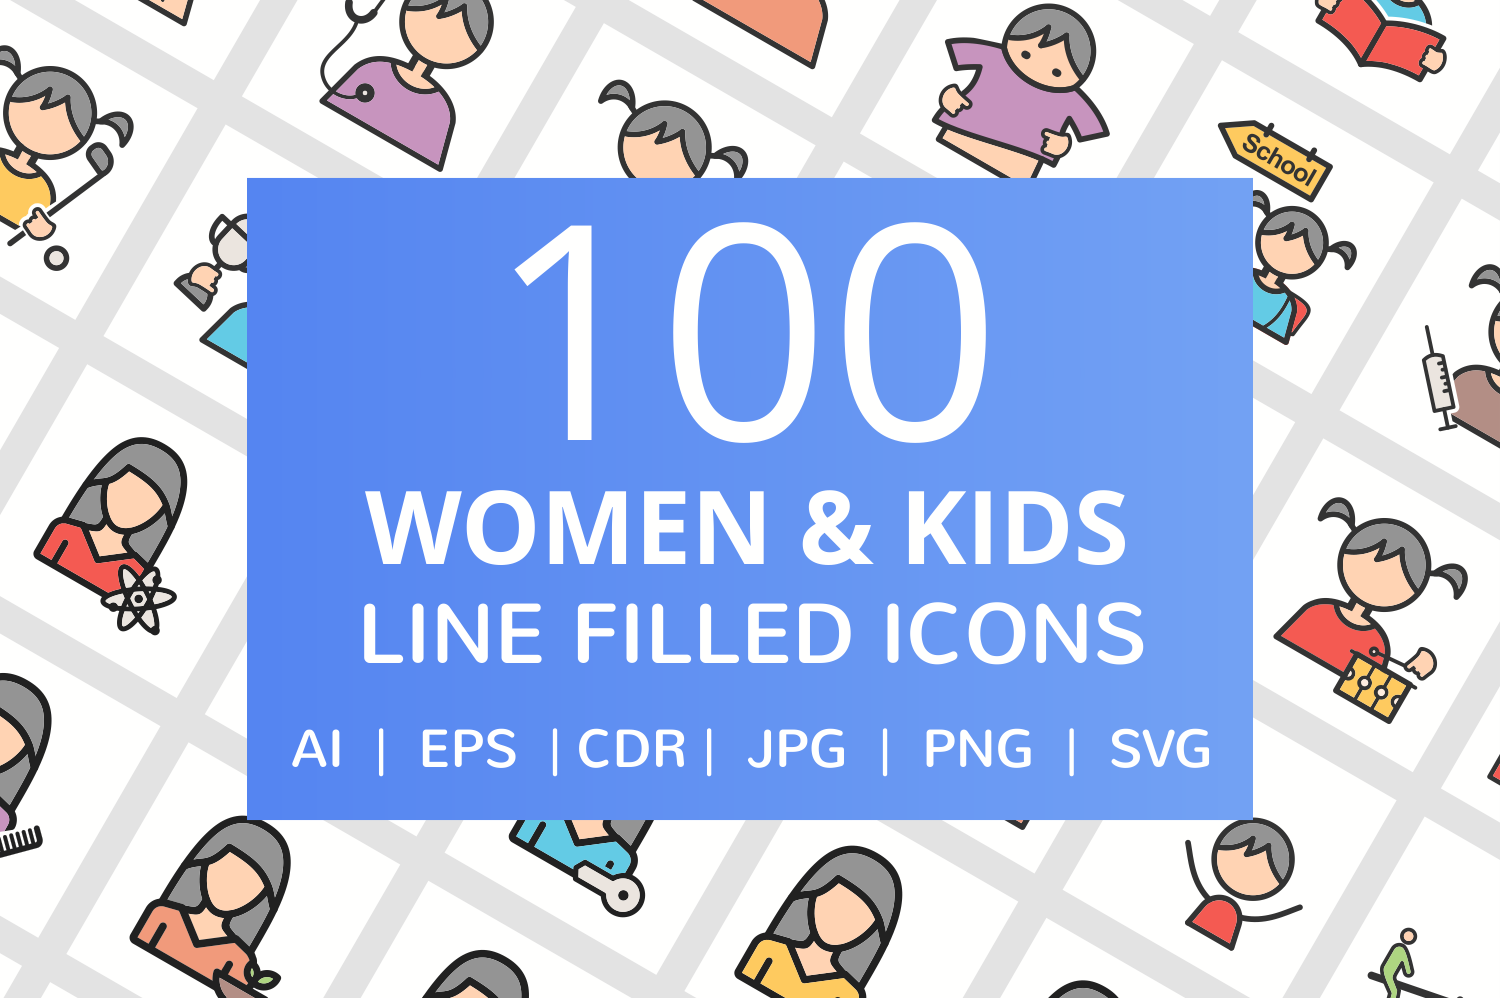 100 Women & Kids Filled Line Icons example image 1